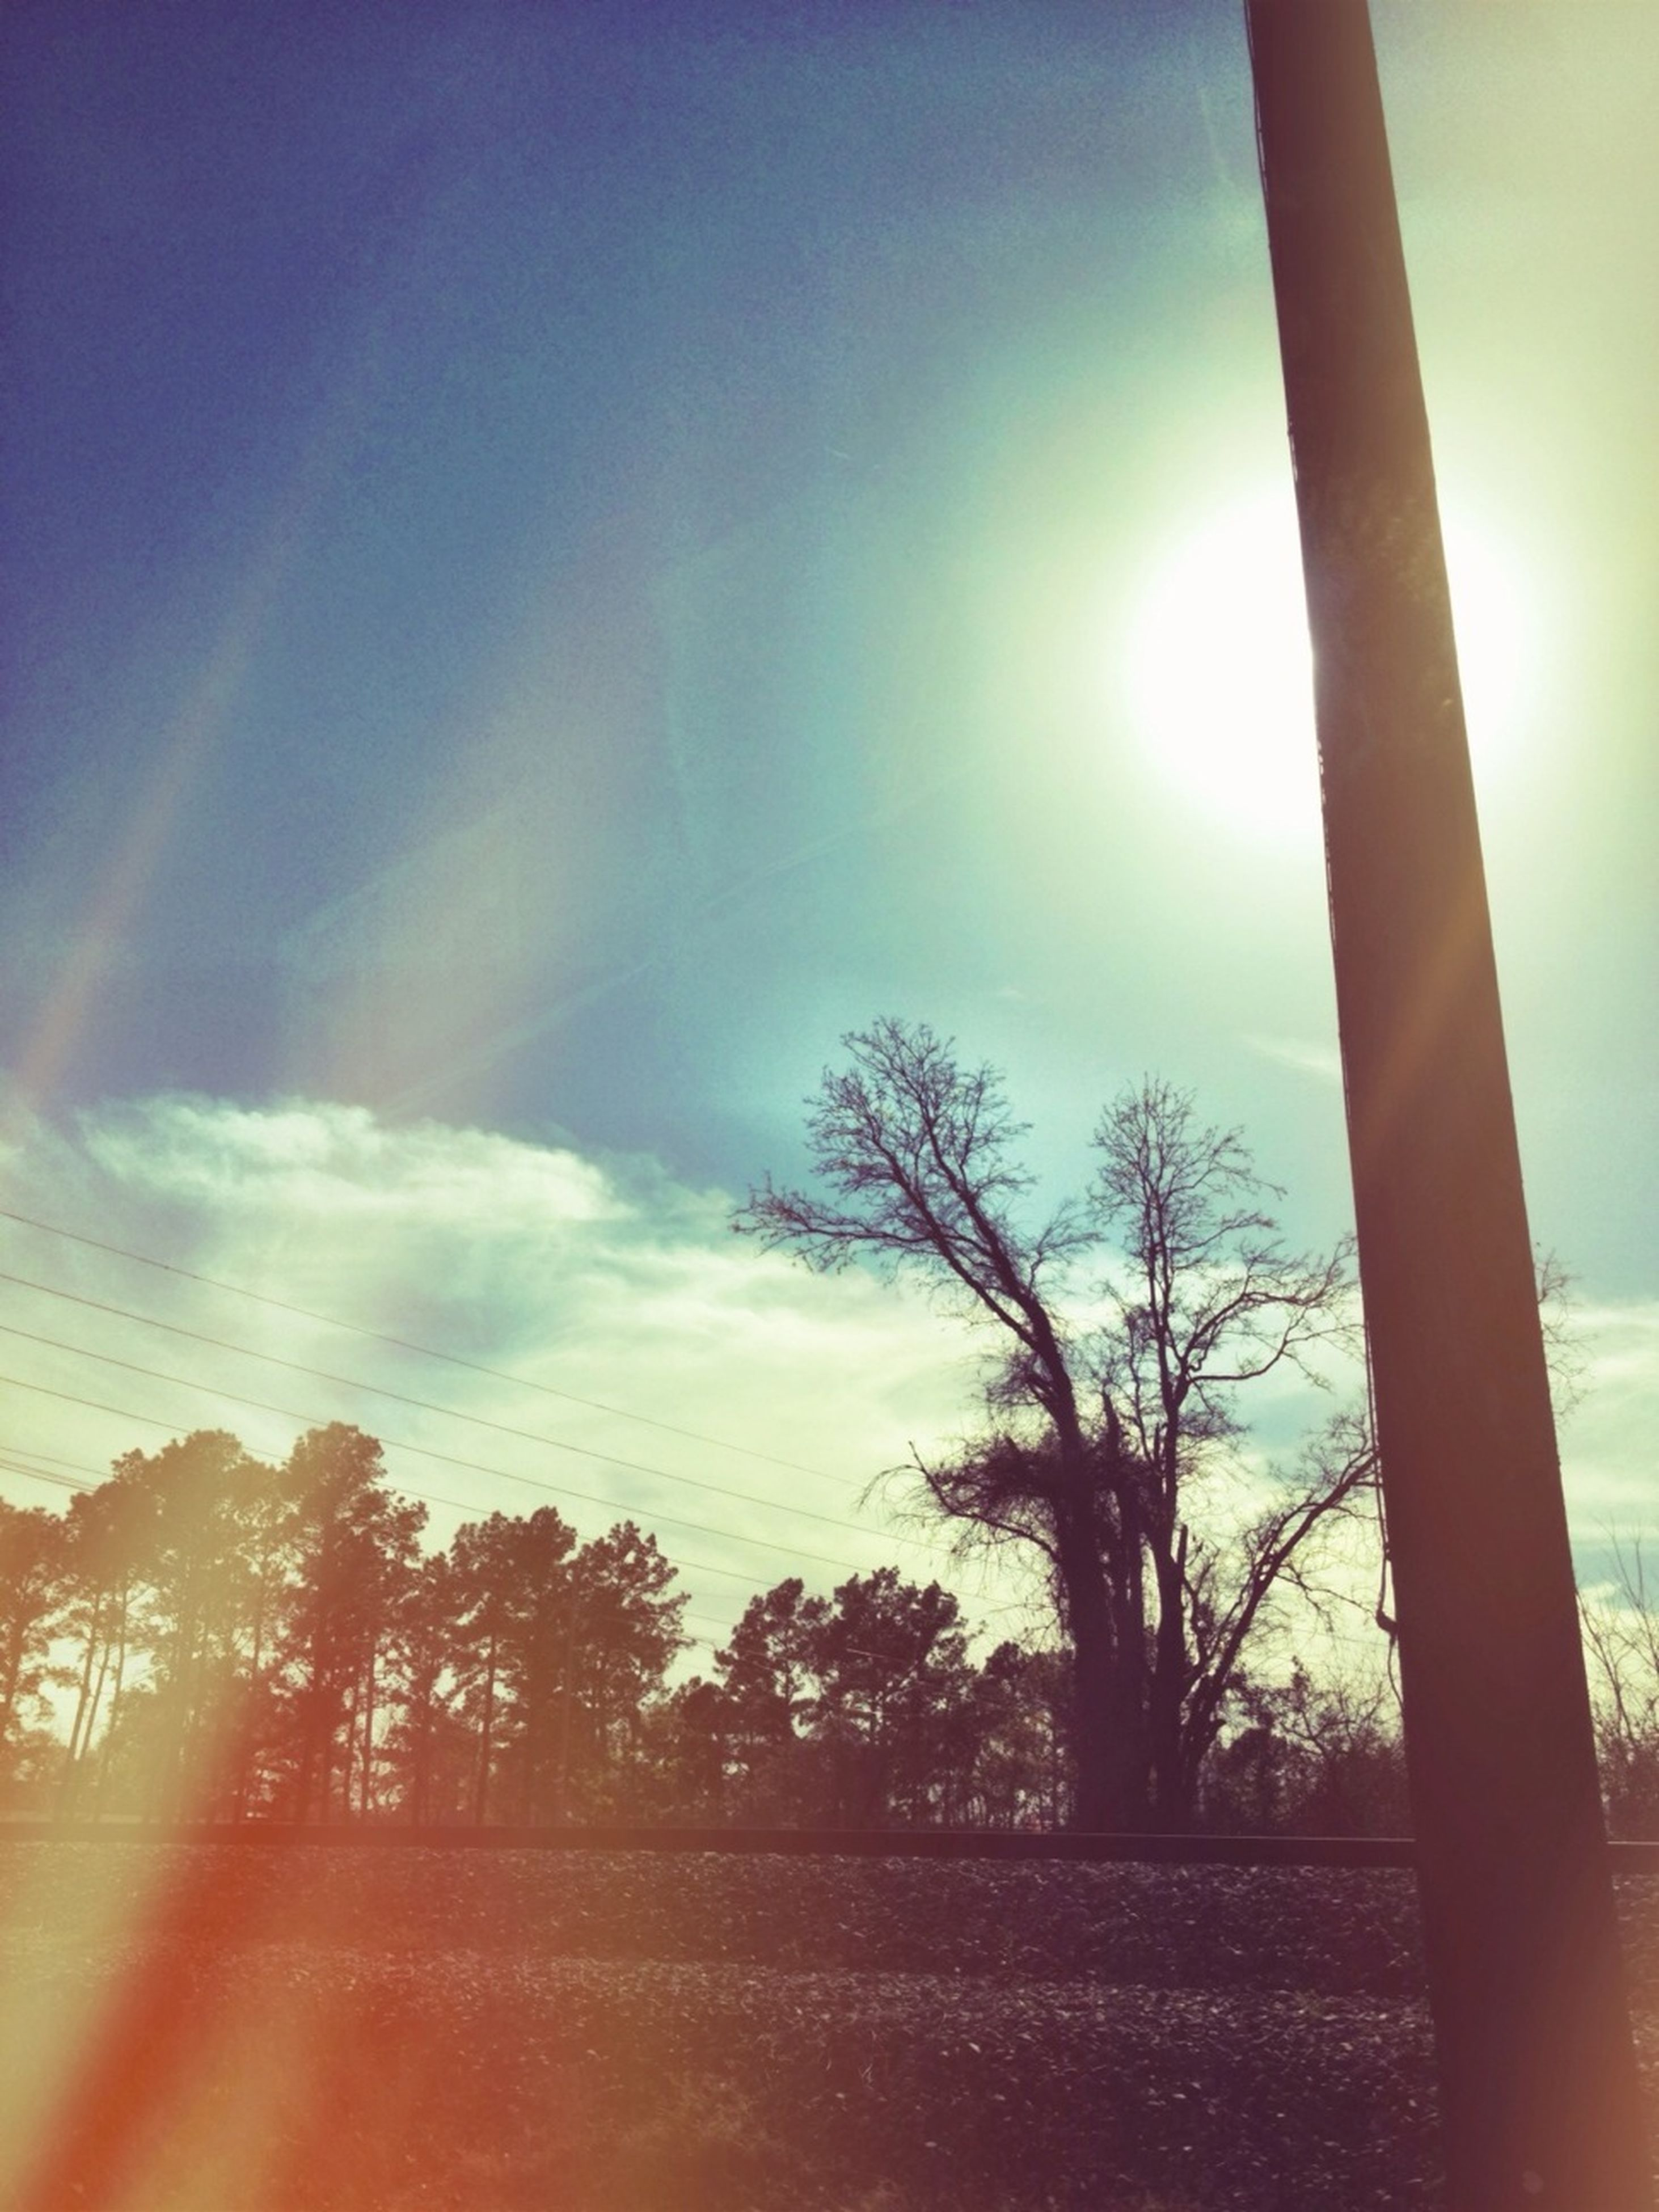 sun, tree, sunbeam, sunlight, lens flare, tranquility, sky, sunset, tranquil scene, bare tree, nature, scenics, beauty in nature, tree trunk, silhouette, branch, landscape, bright, growth, field